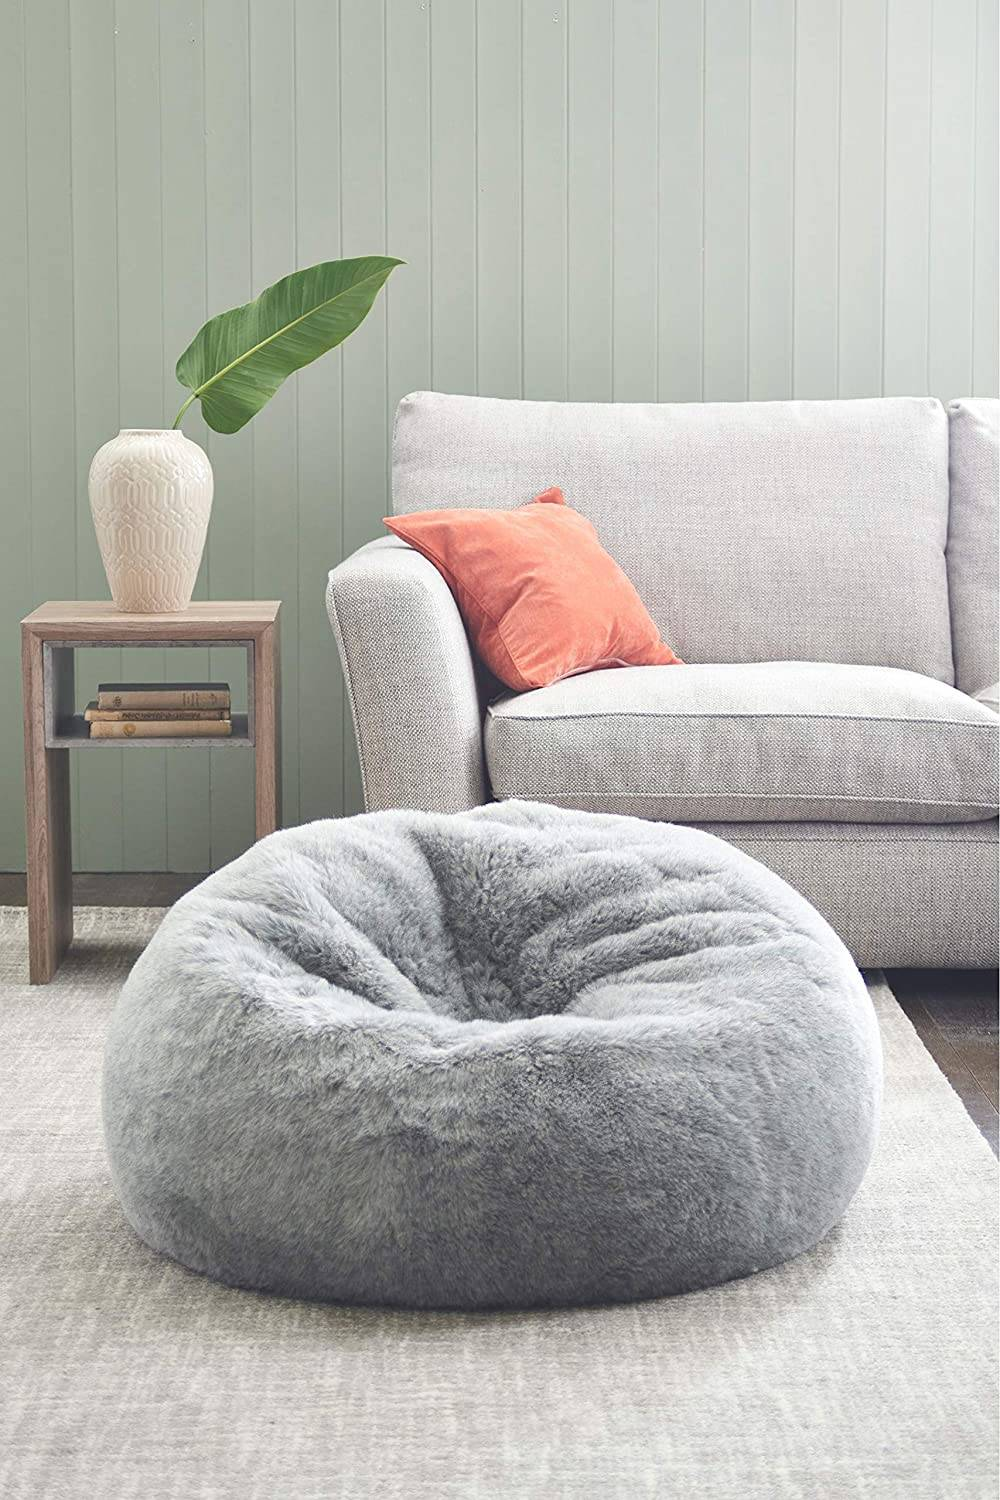 Best Big Bean Bags For Extra Comfort, Big Bean Bags For Living Room